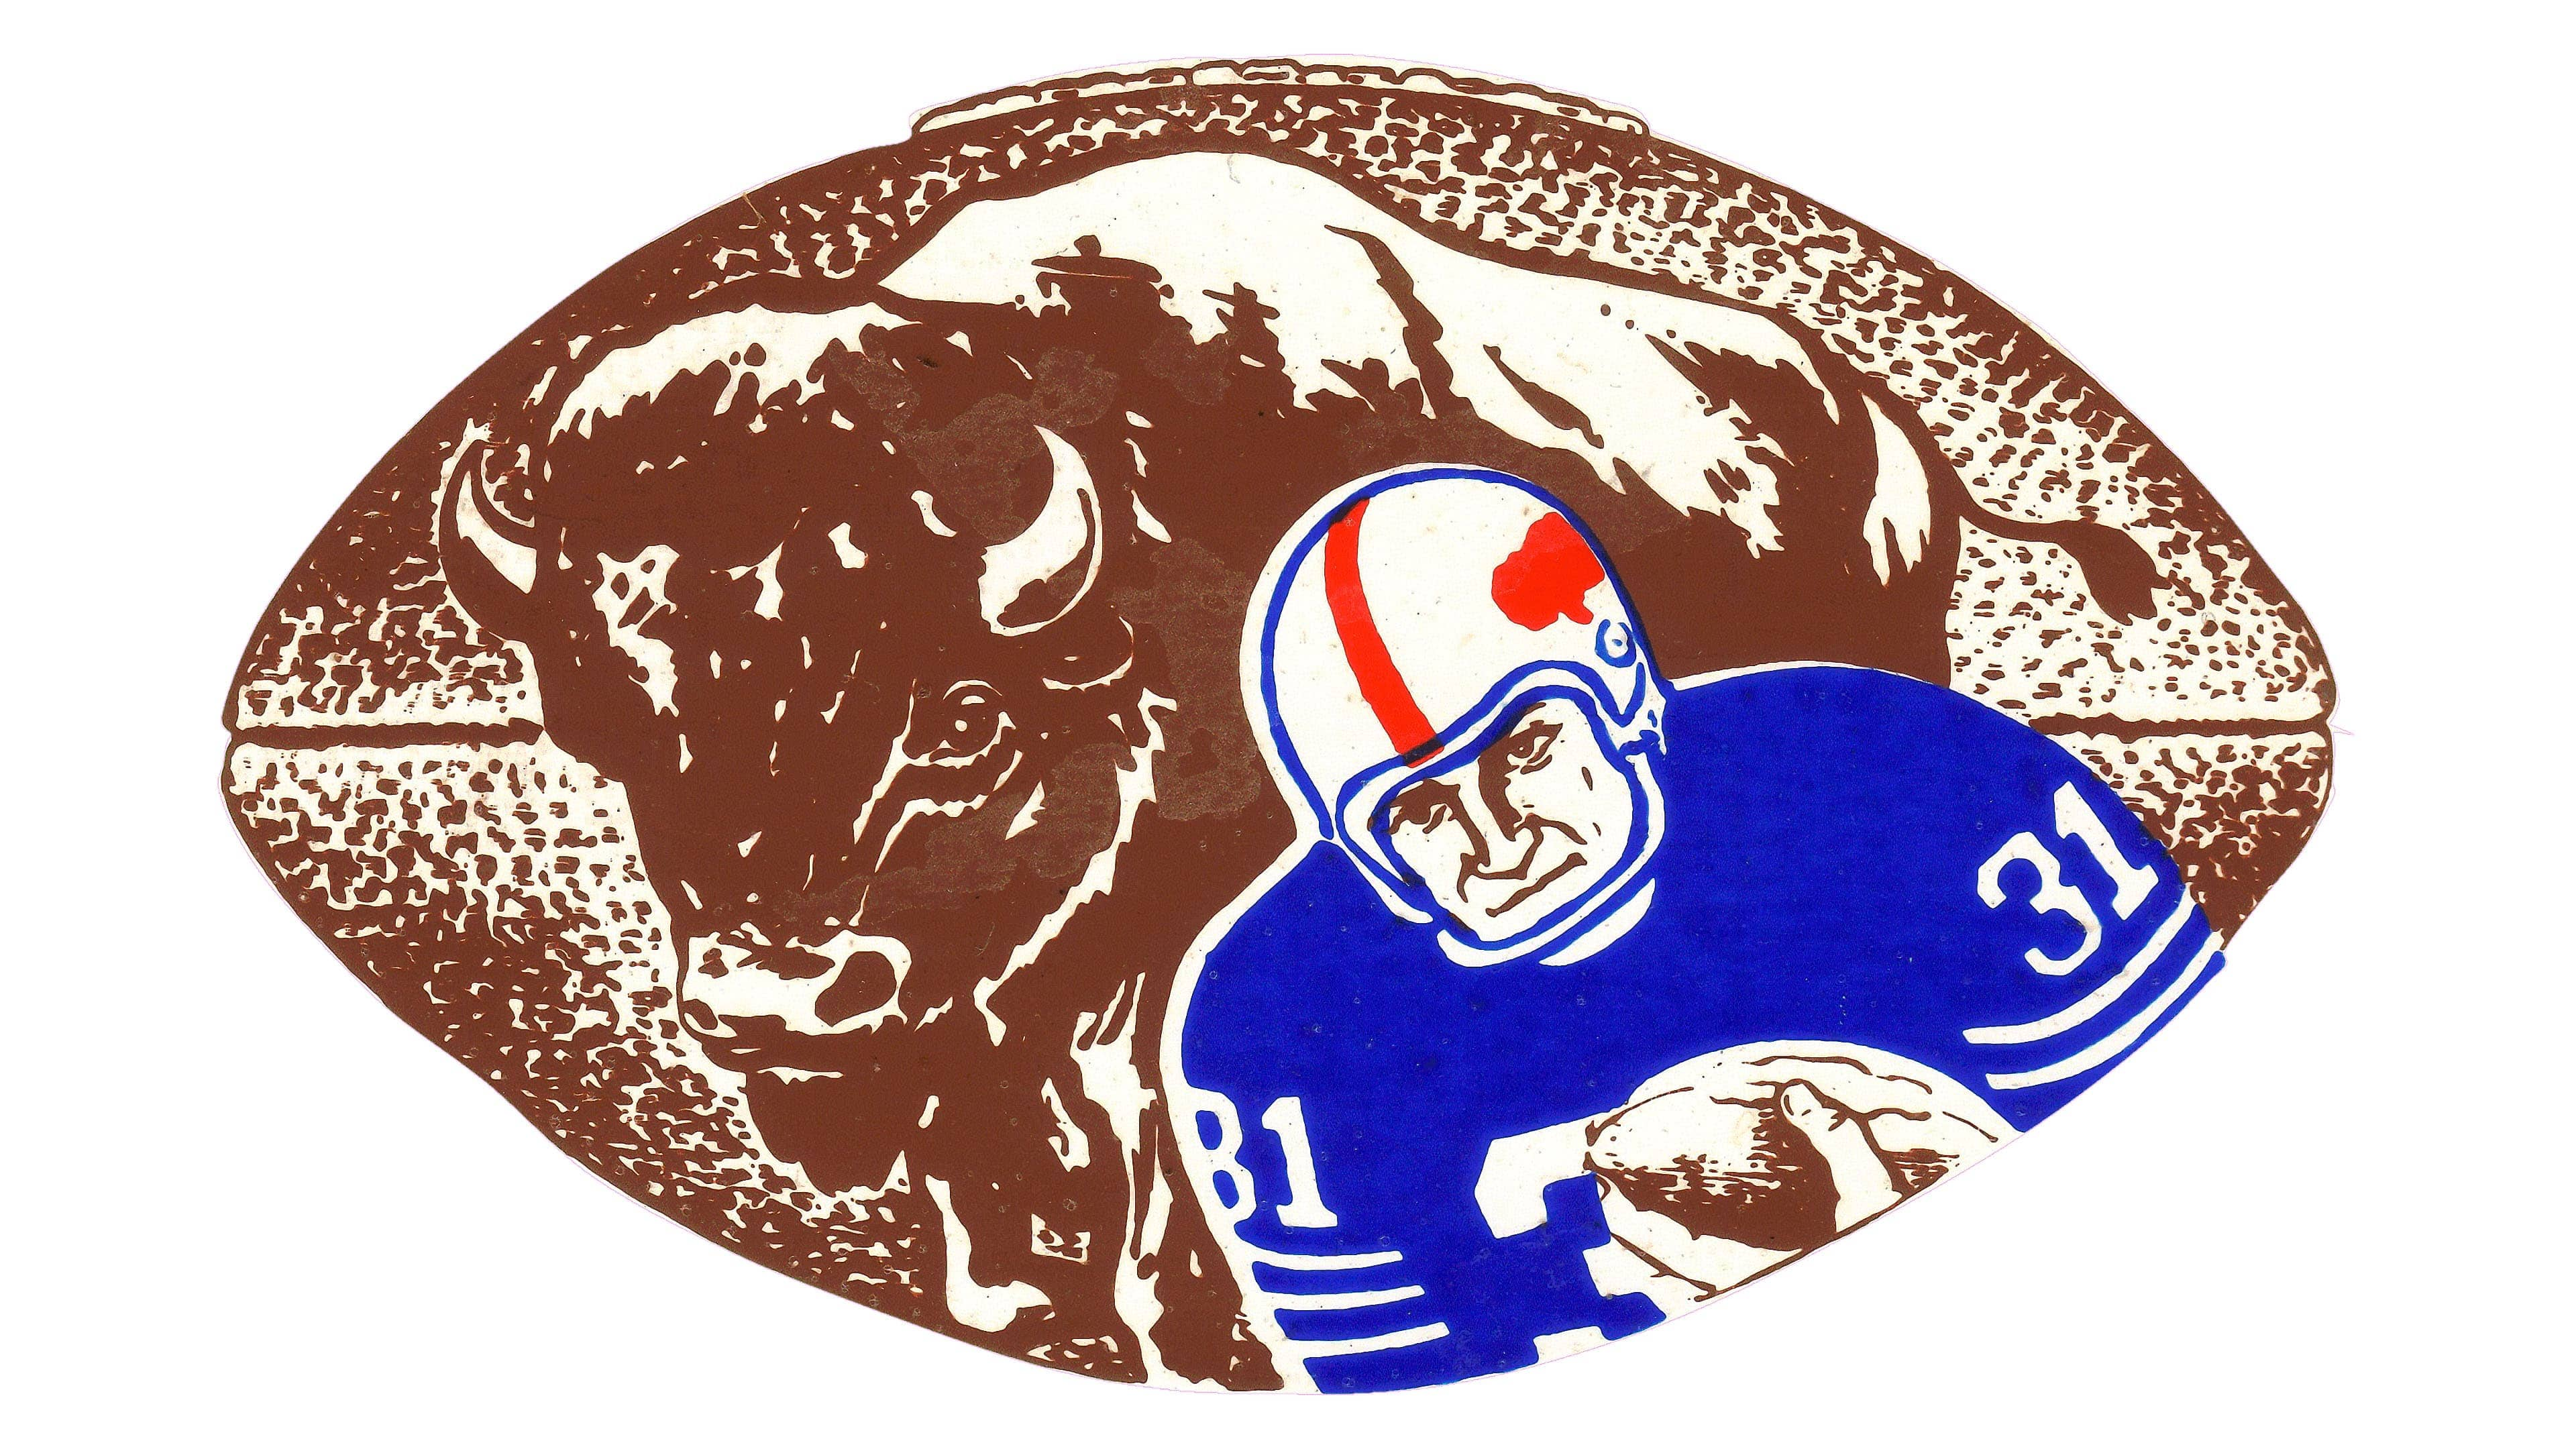 Buffalo Bills Logo The Most Famous Brands And Company Logos In The World